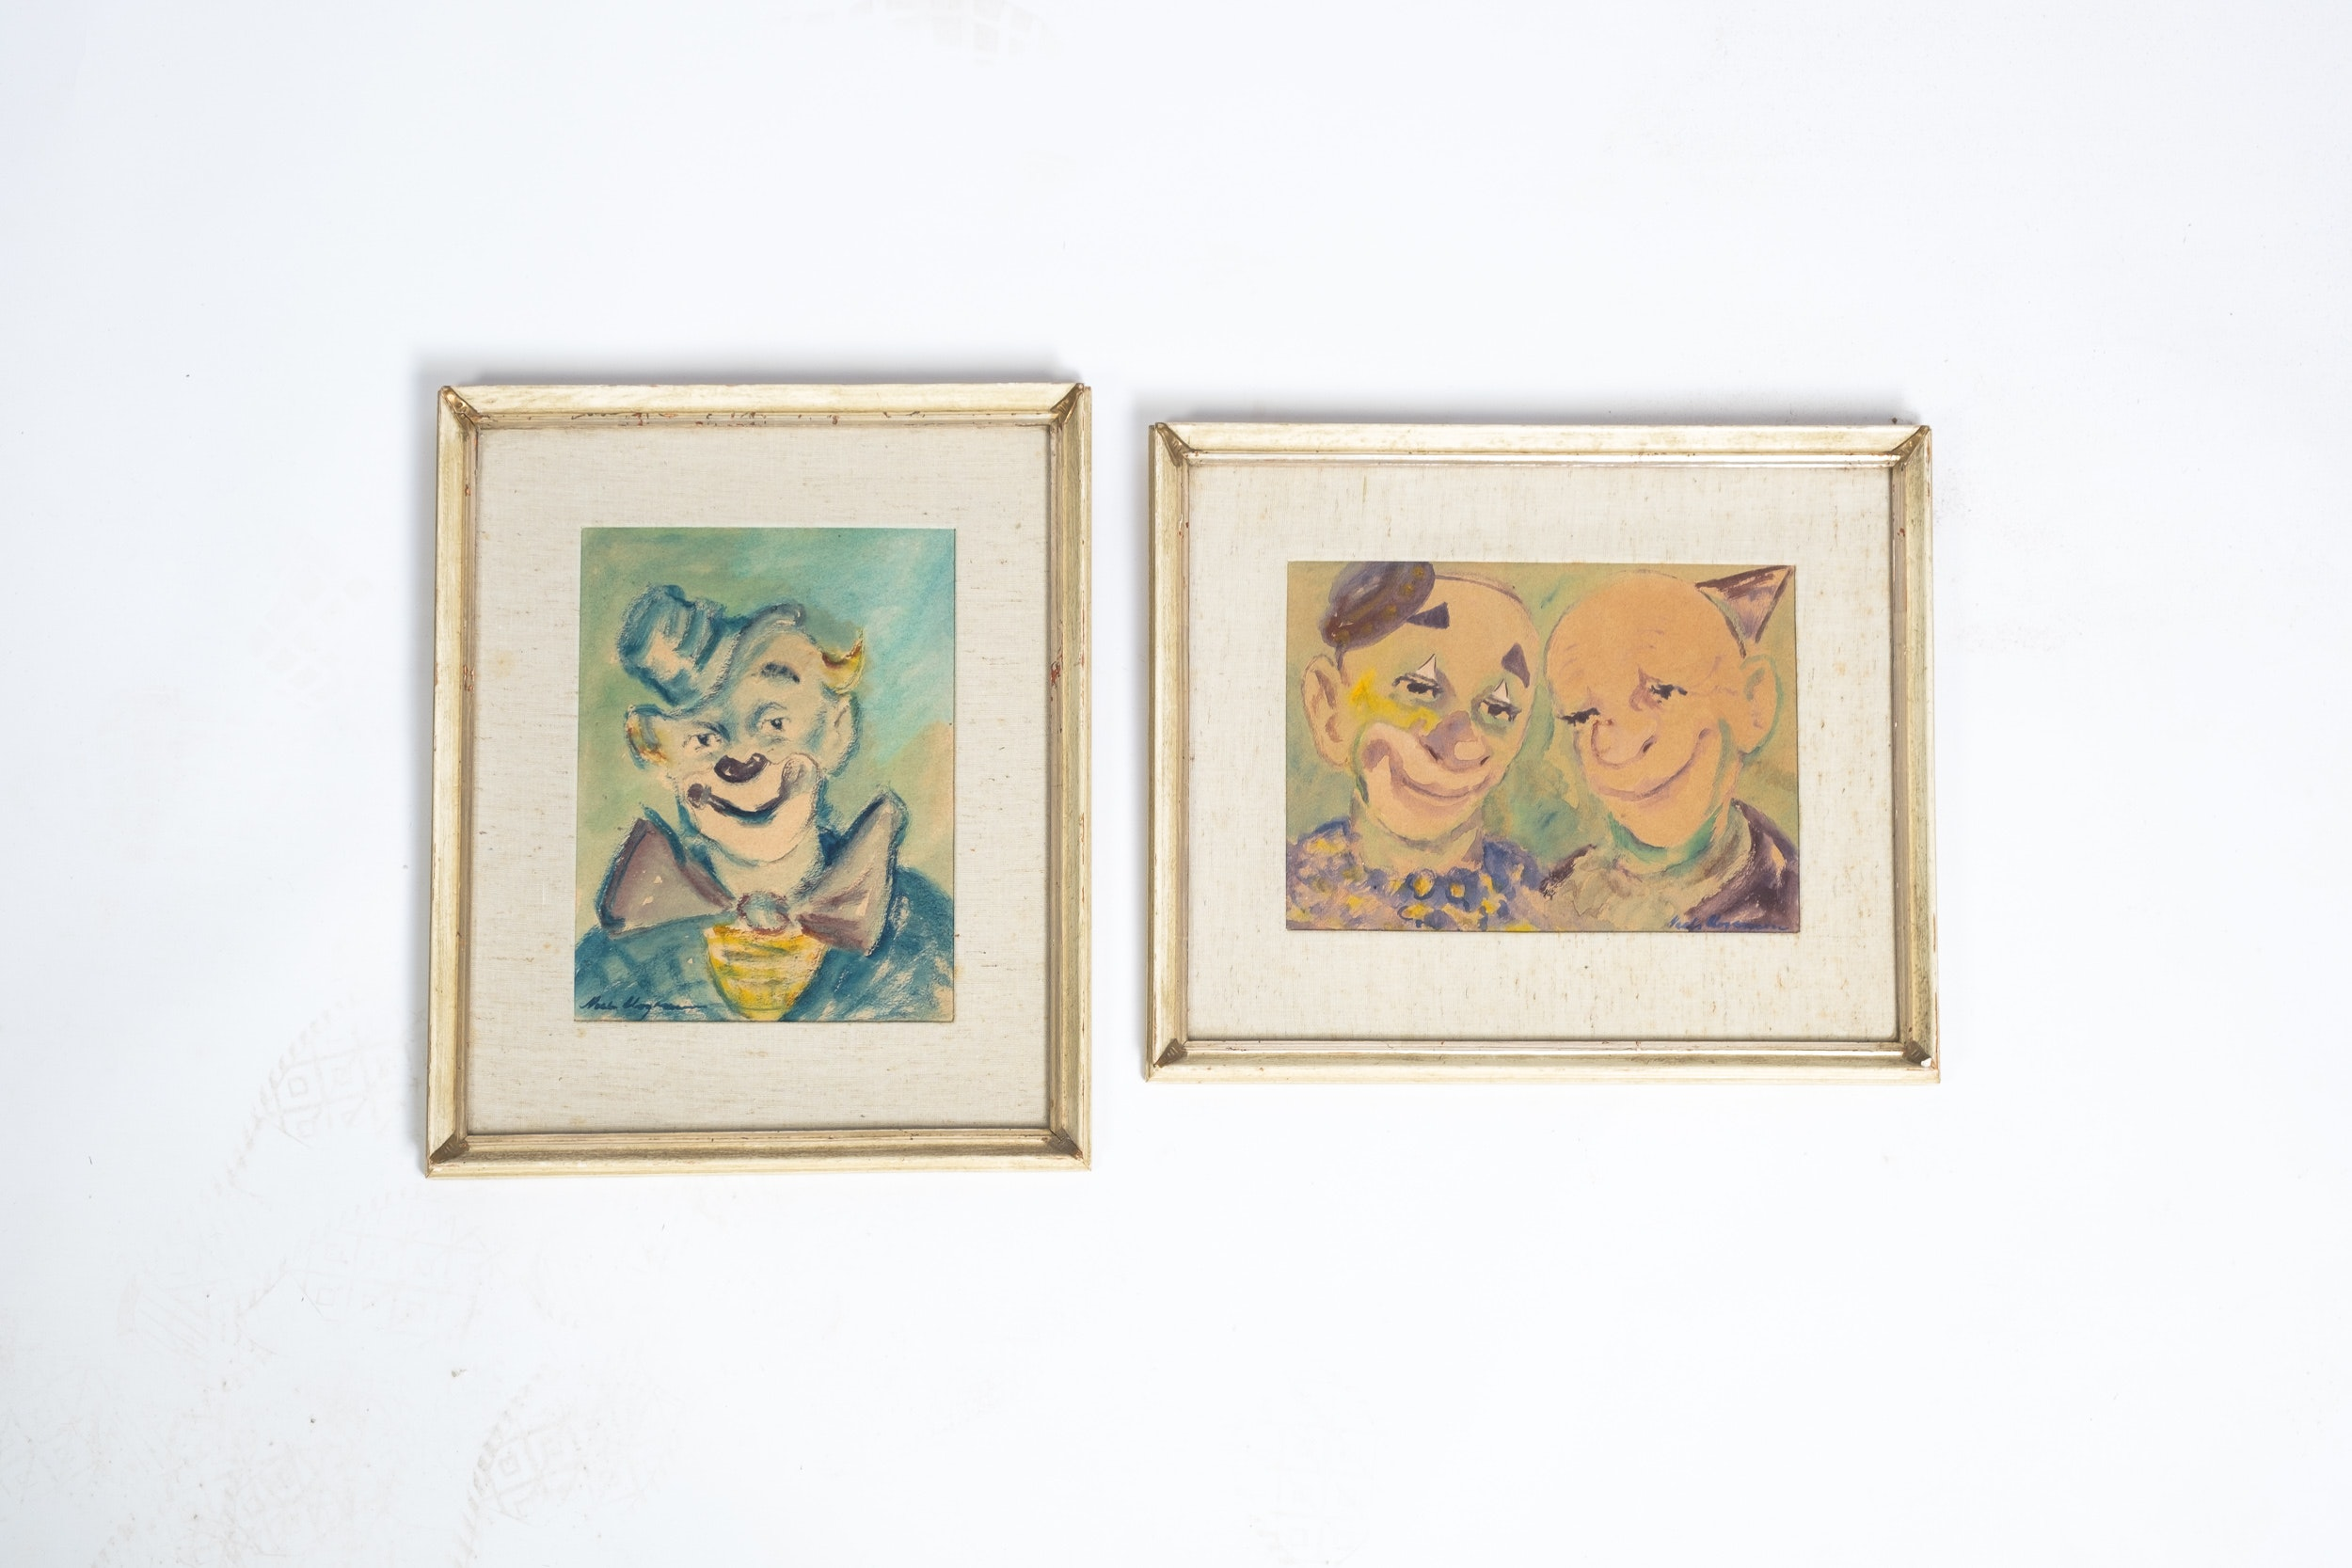 Niels Mogensen Watercolor Paintings of Clowns